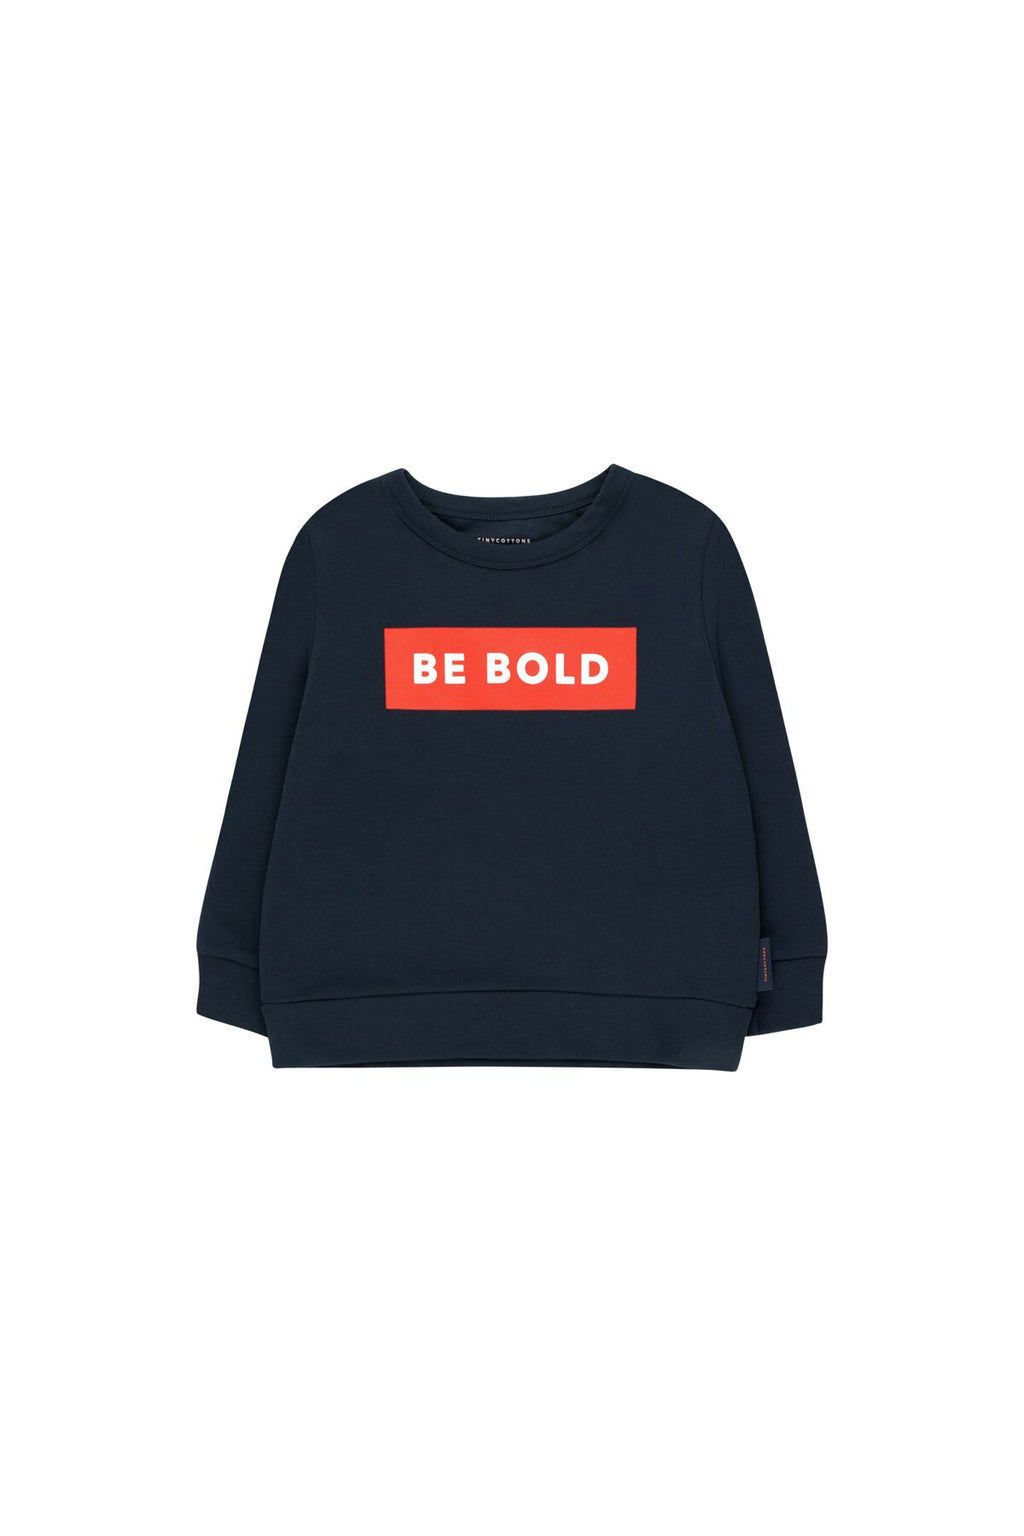 BE BOLD' SWEATSHIRT